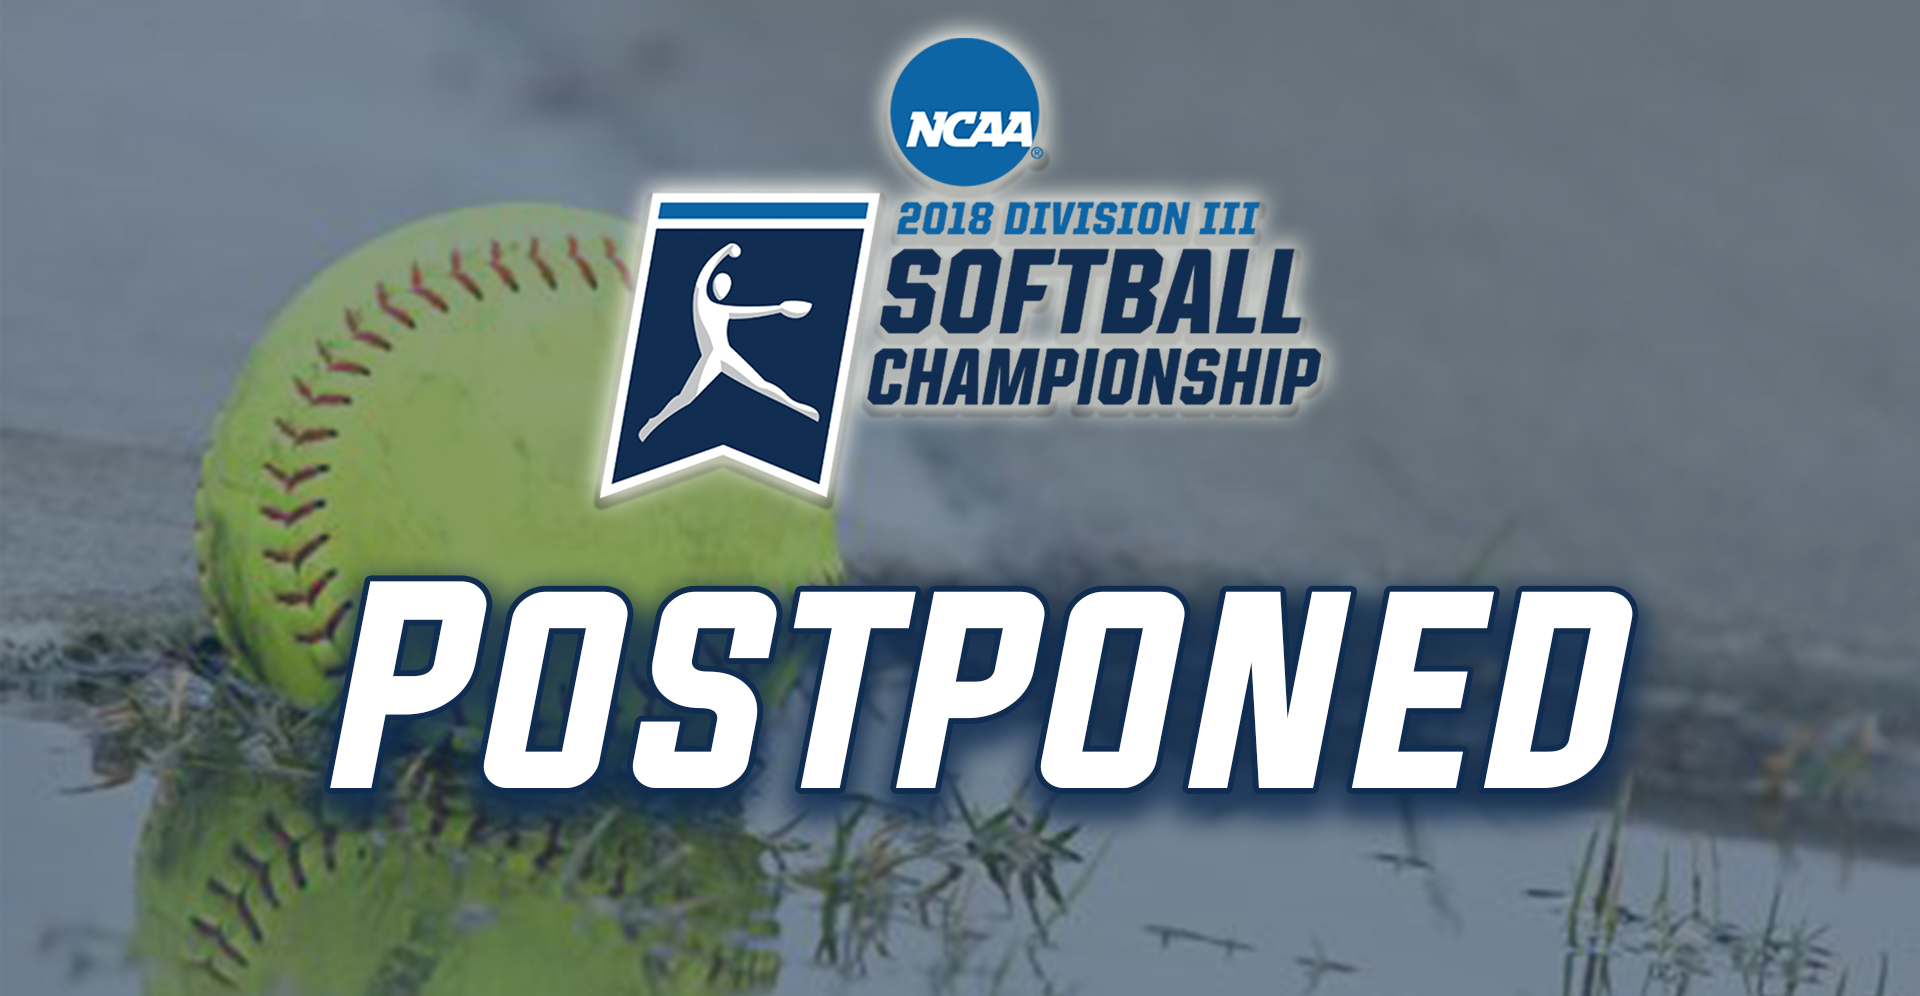 NCAA DIII Softball Super Regional at Rowan University postponed due to weather on May 18.